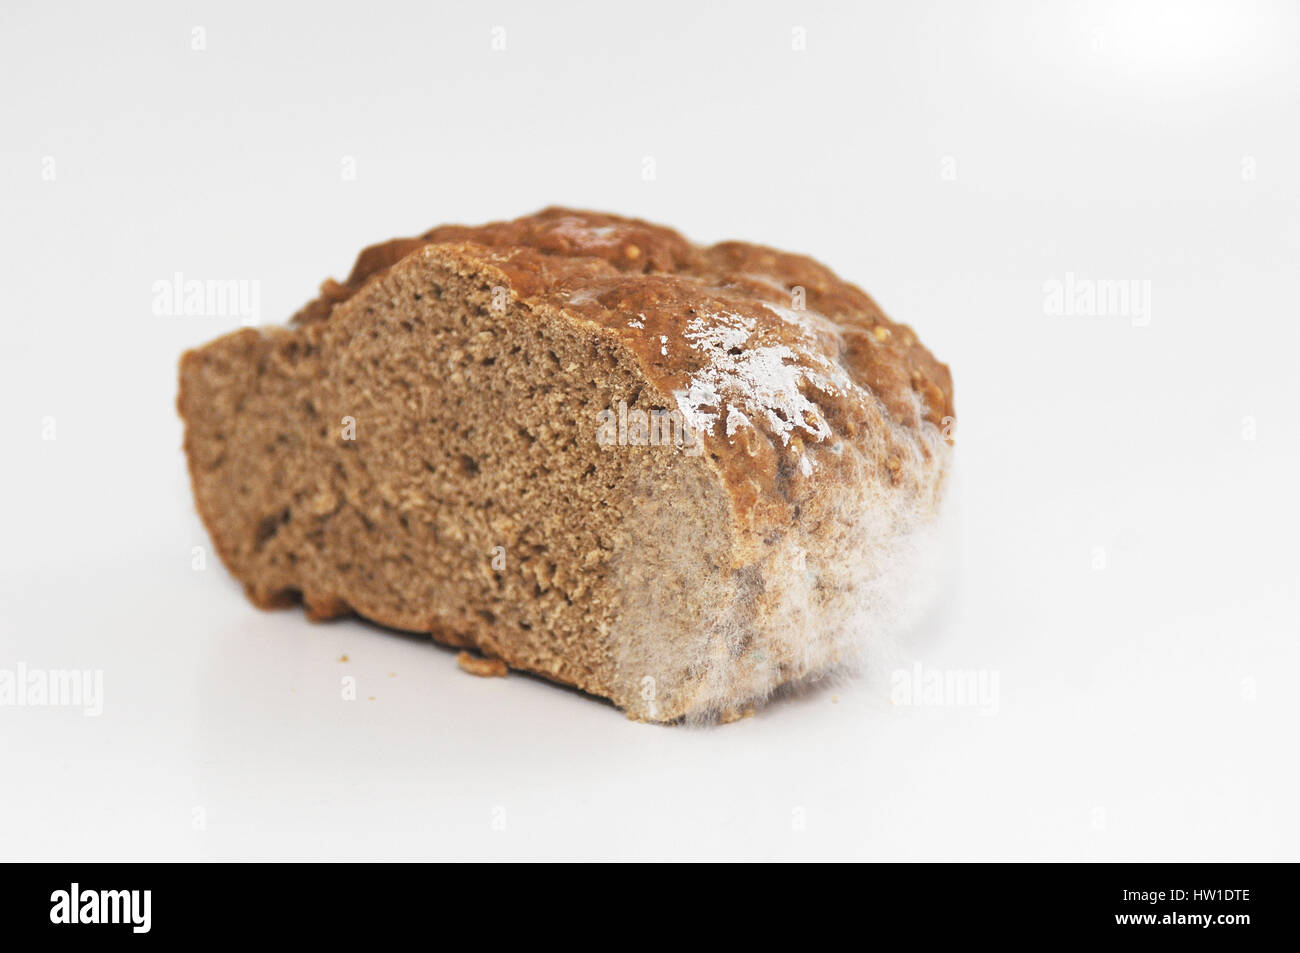 Bread with mould, Brot mit Schimmel - Stock Image